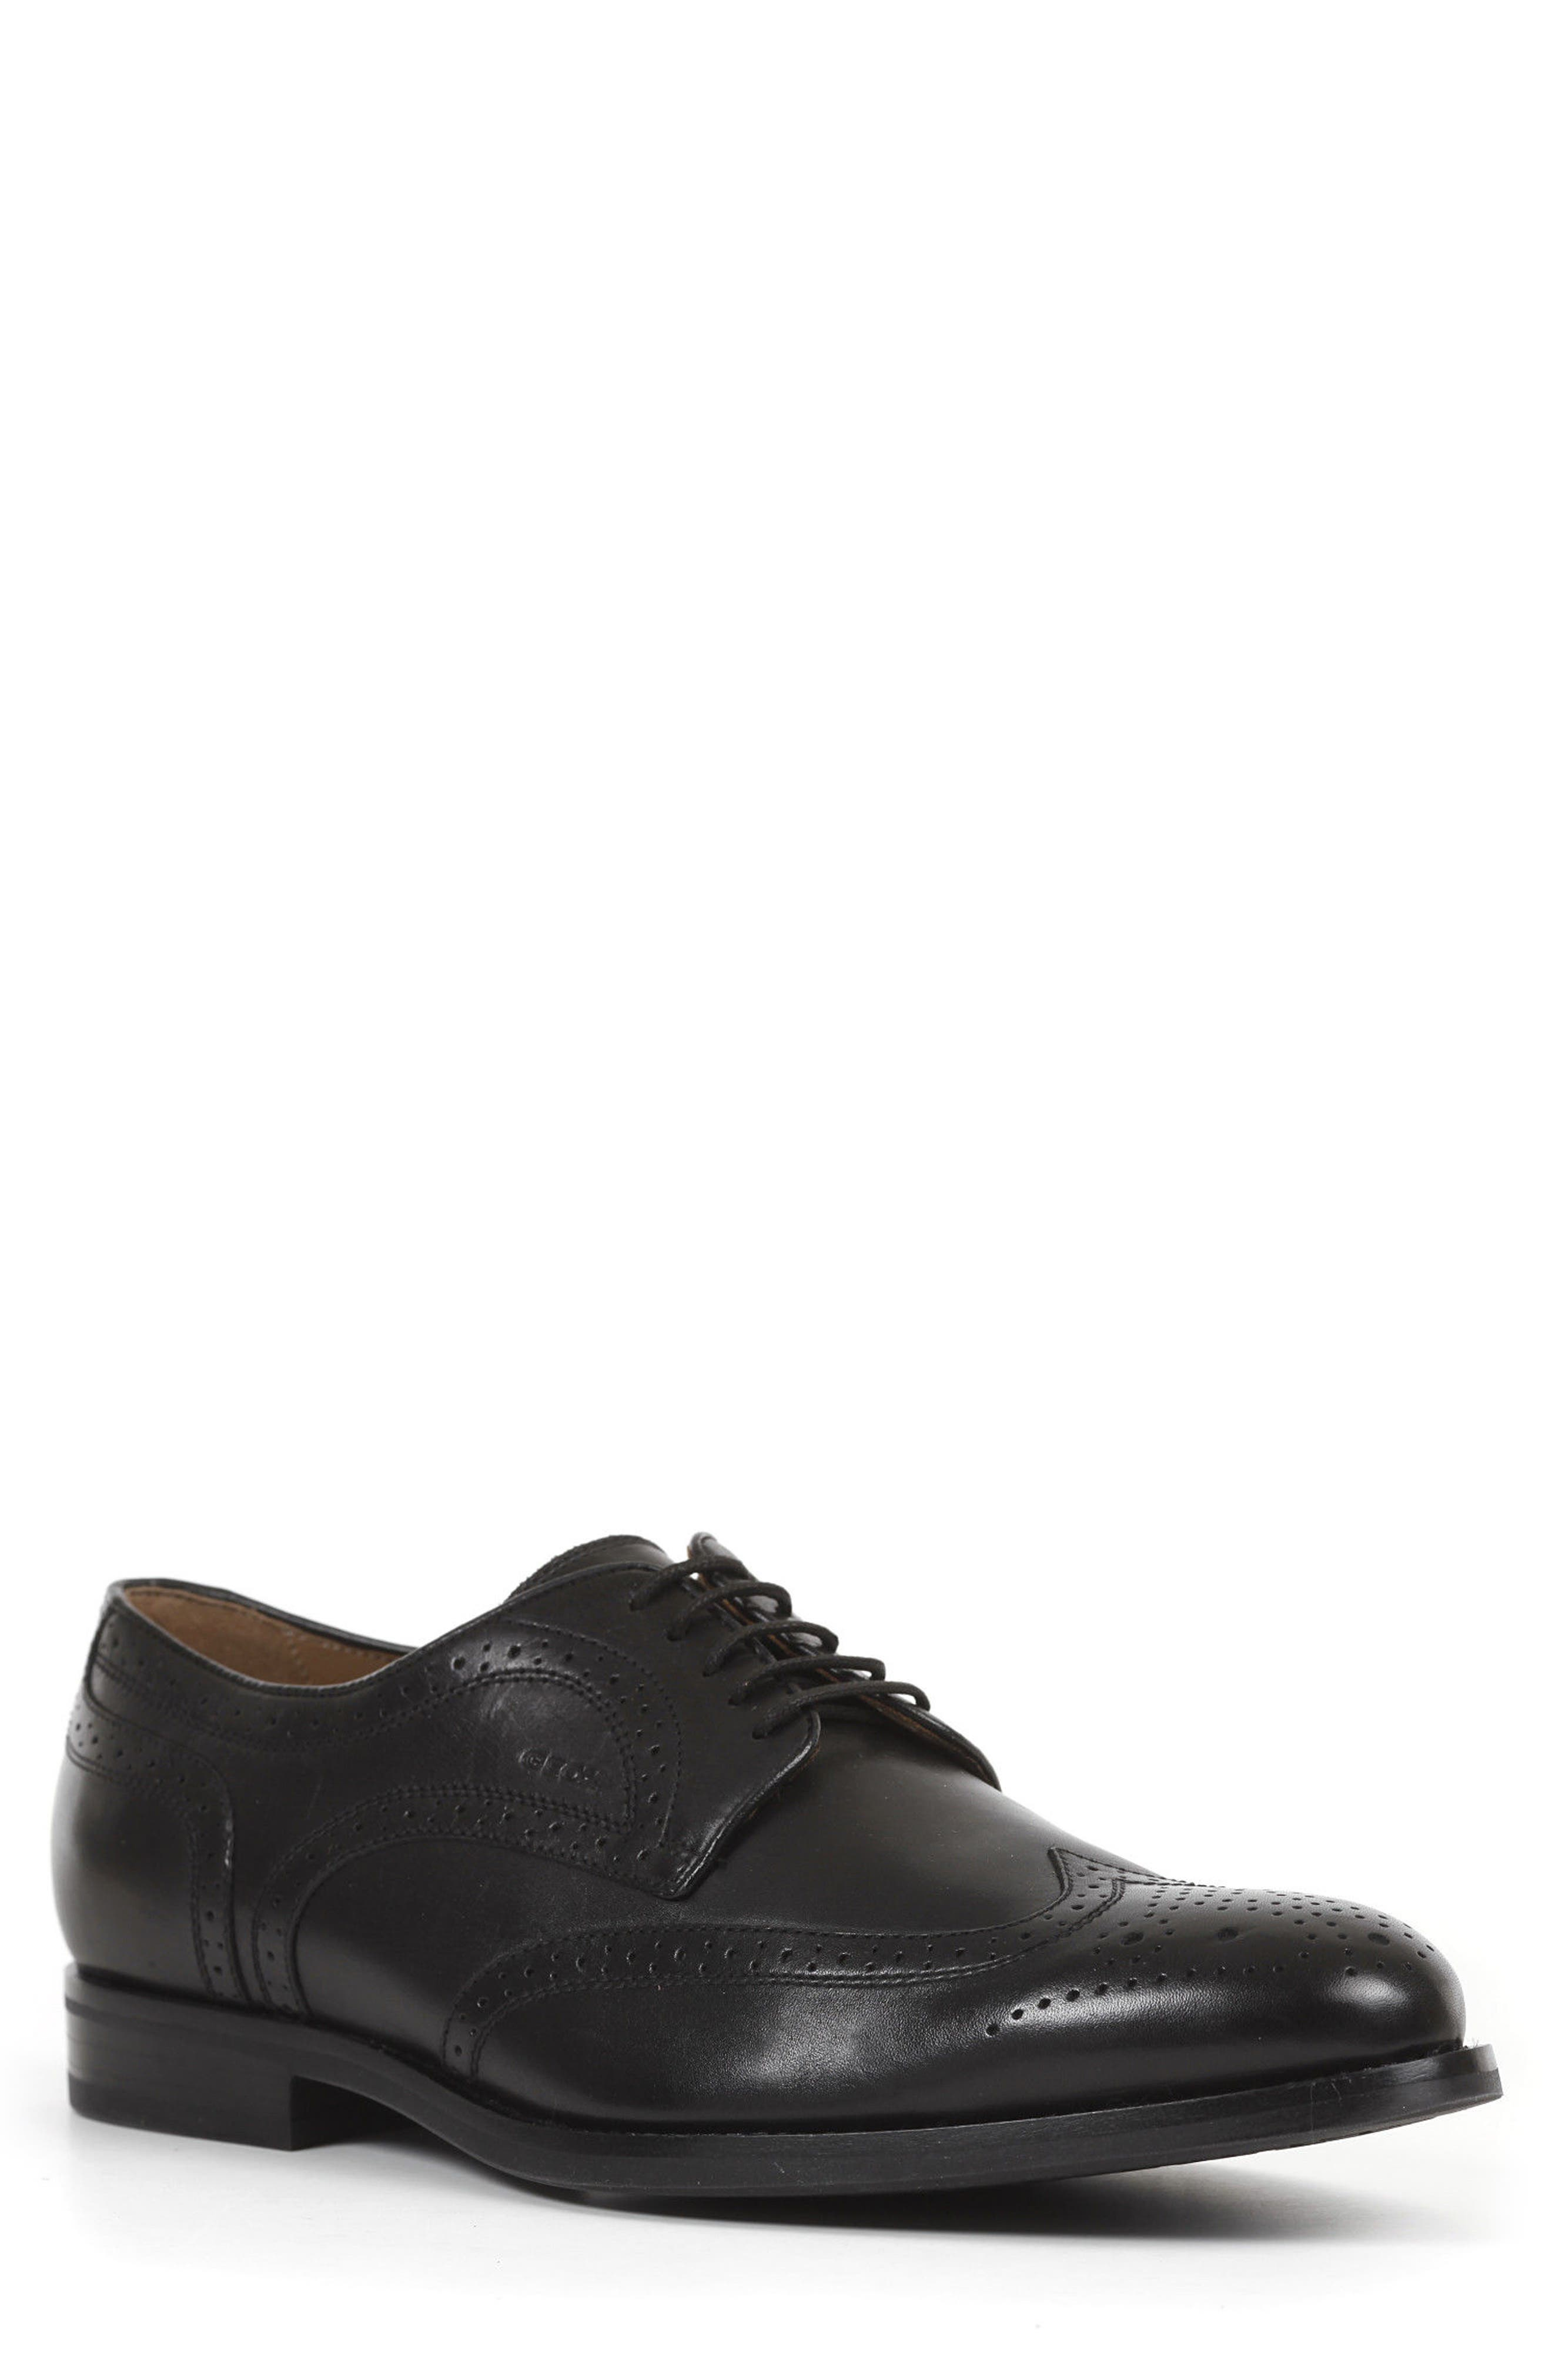 Hampstead 5 Wingtip,                             Main thumbnail 1, color,                             010